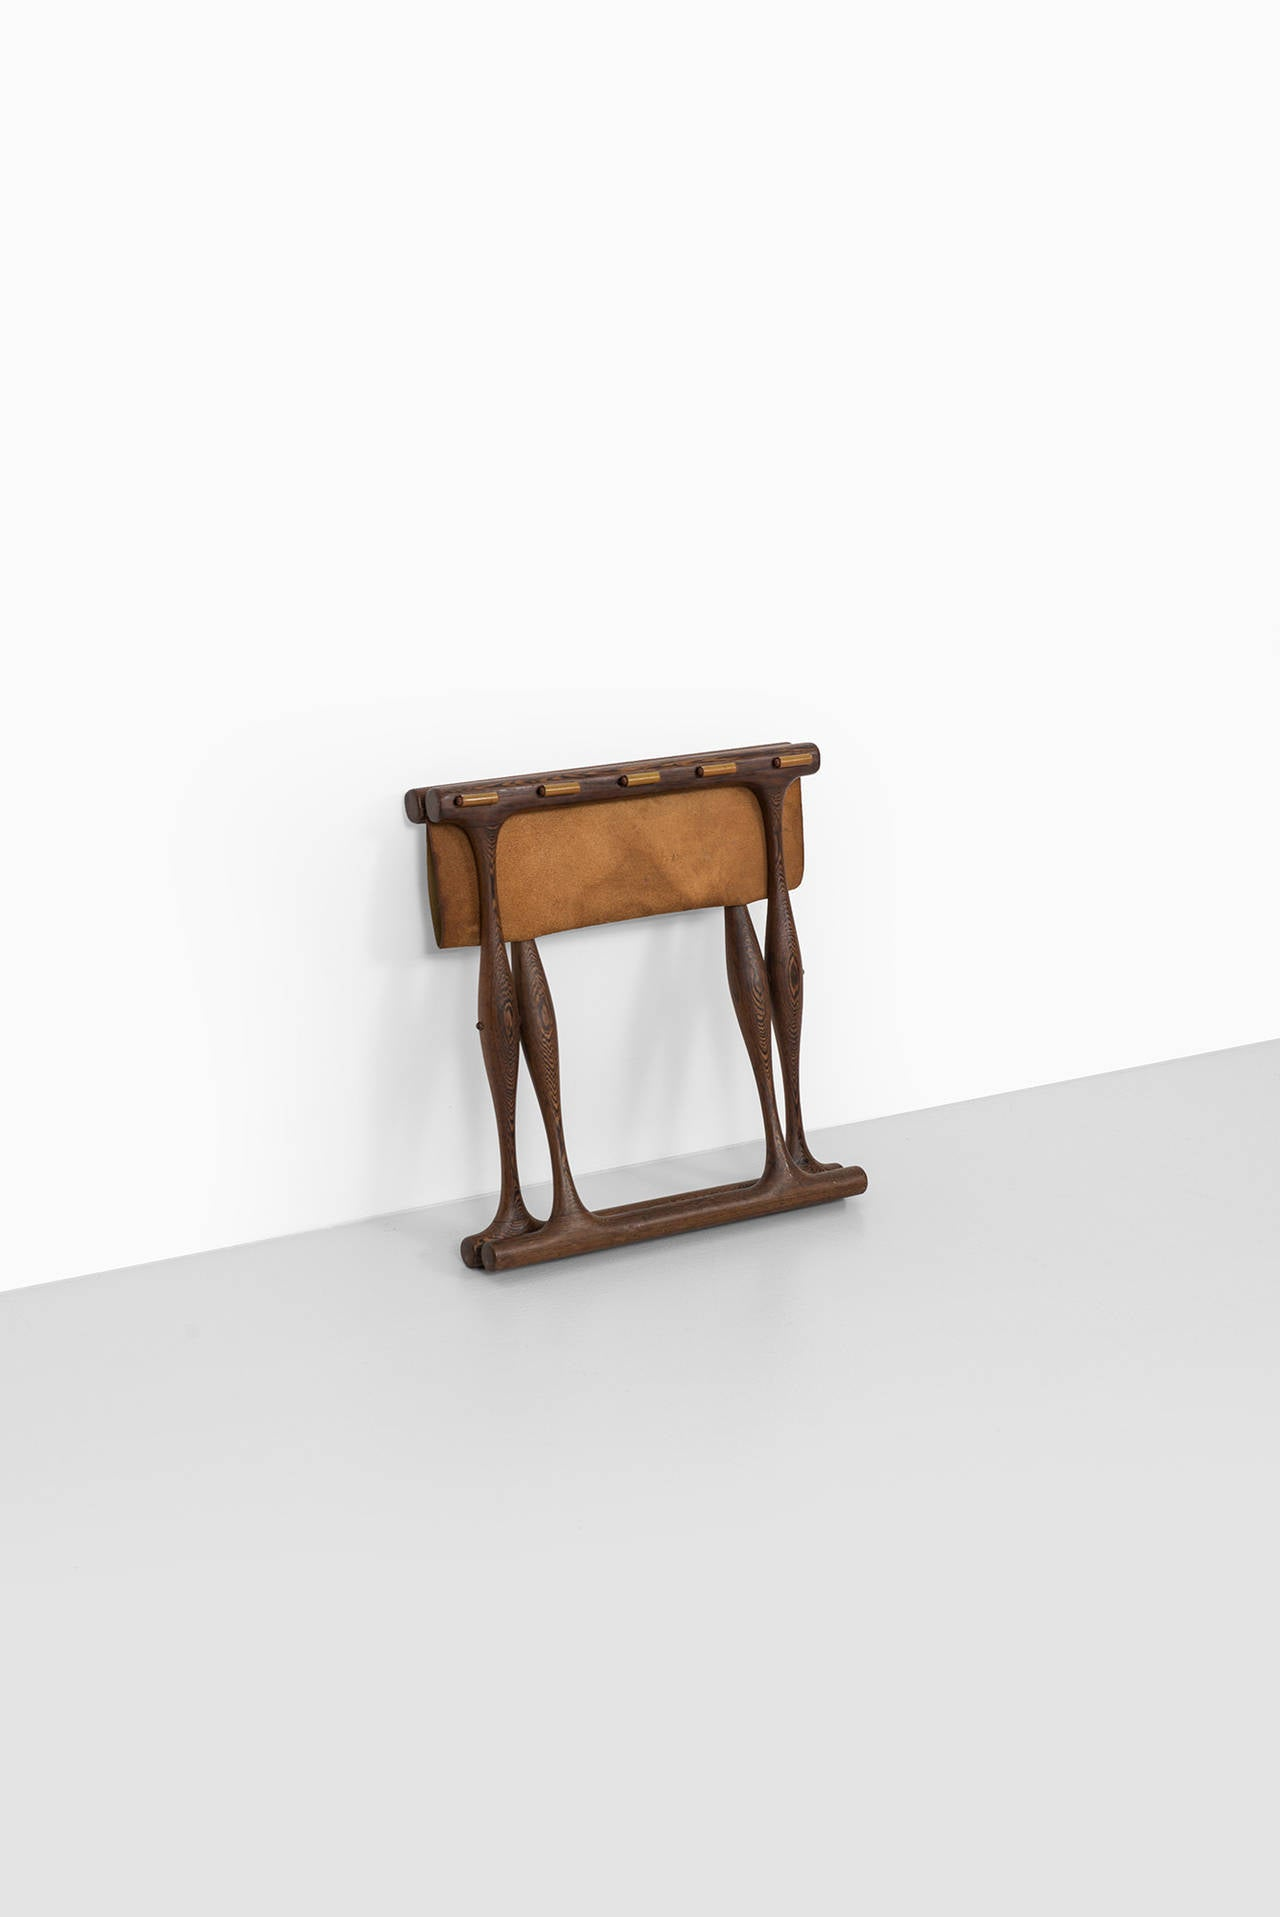 Poul Hundevad Stool, Model Guldhøj (PH 43) in Wengé and Olive Leather For Sale 3